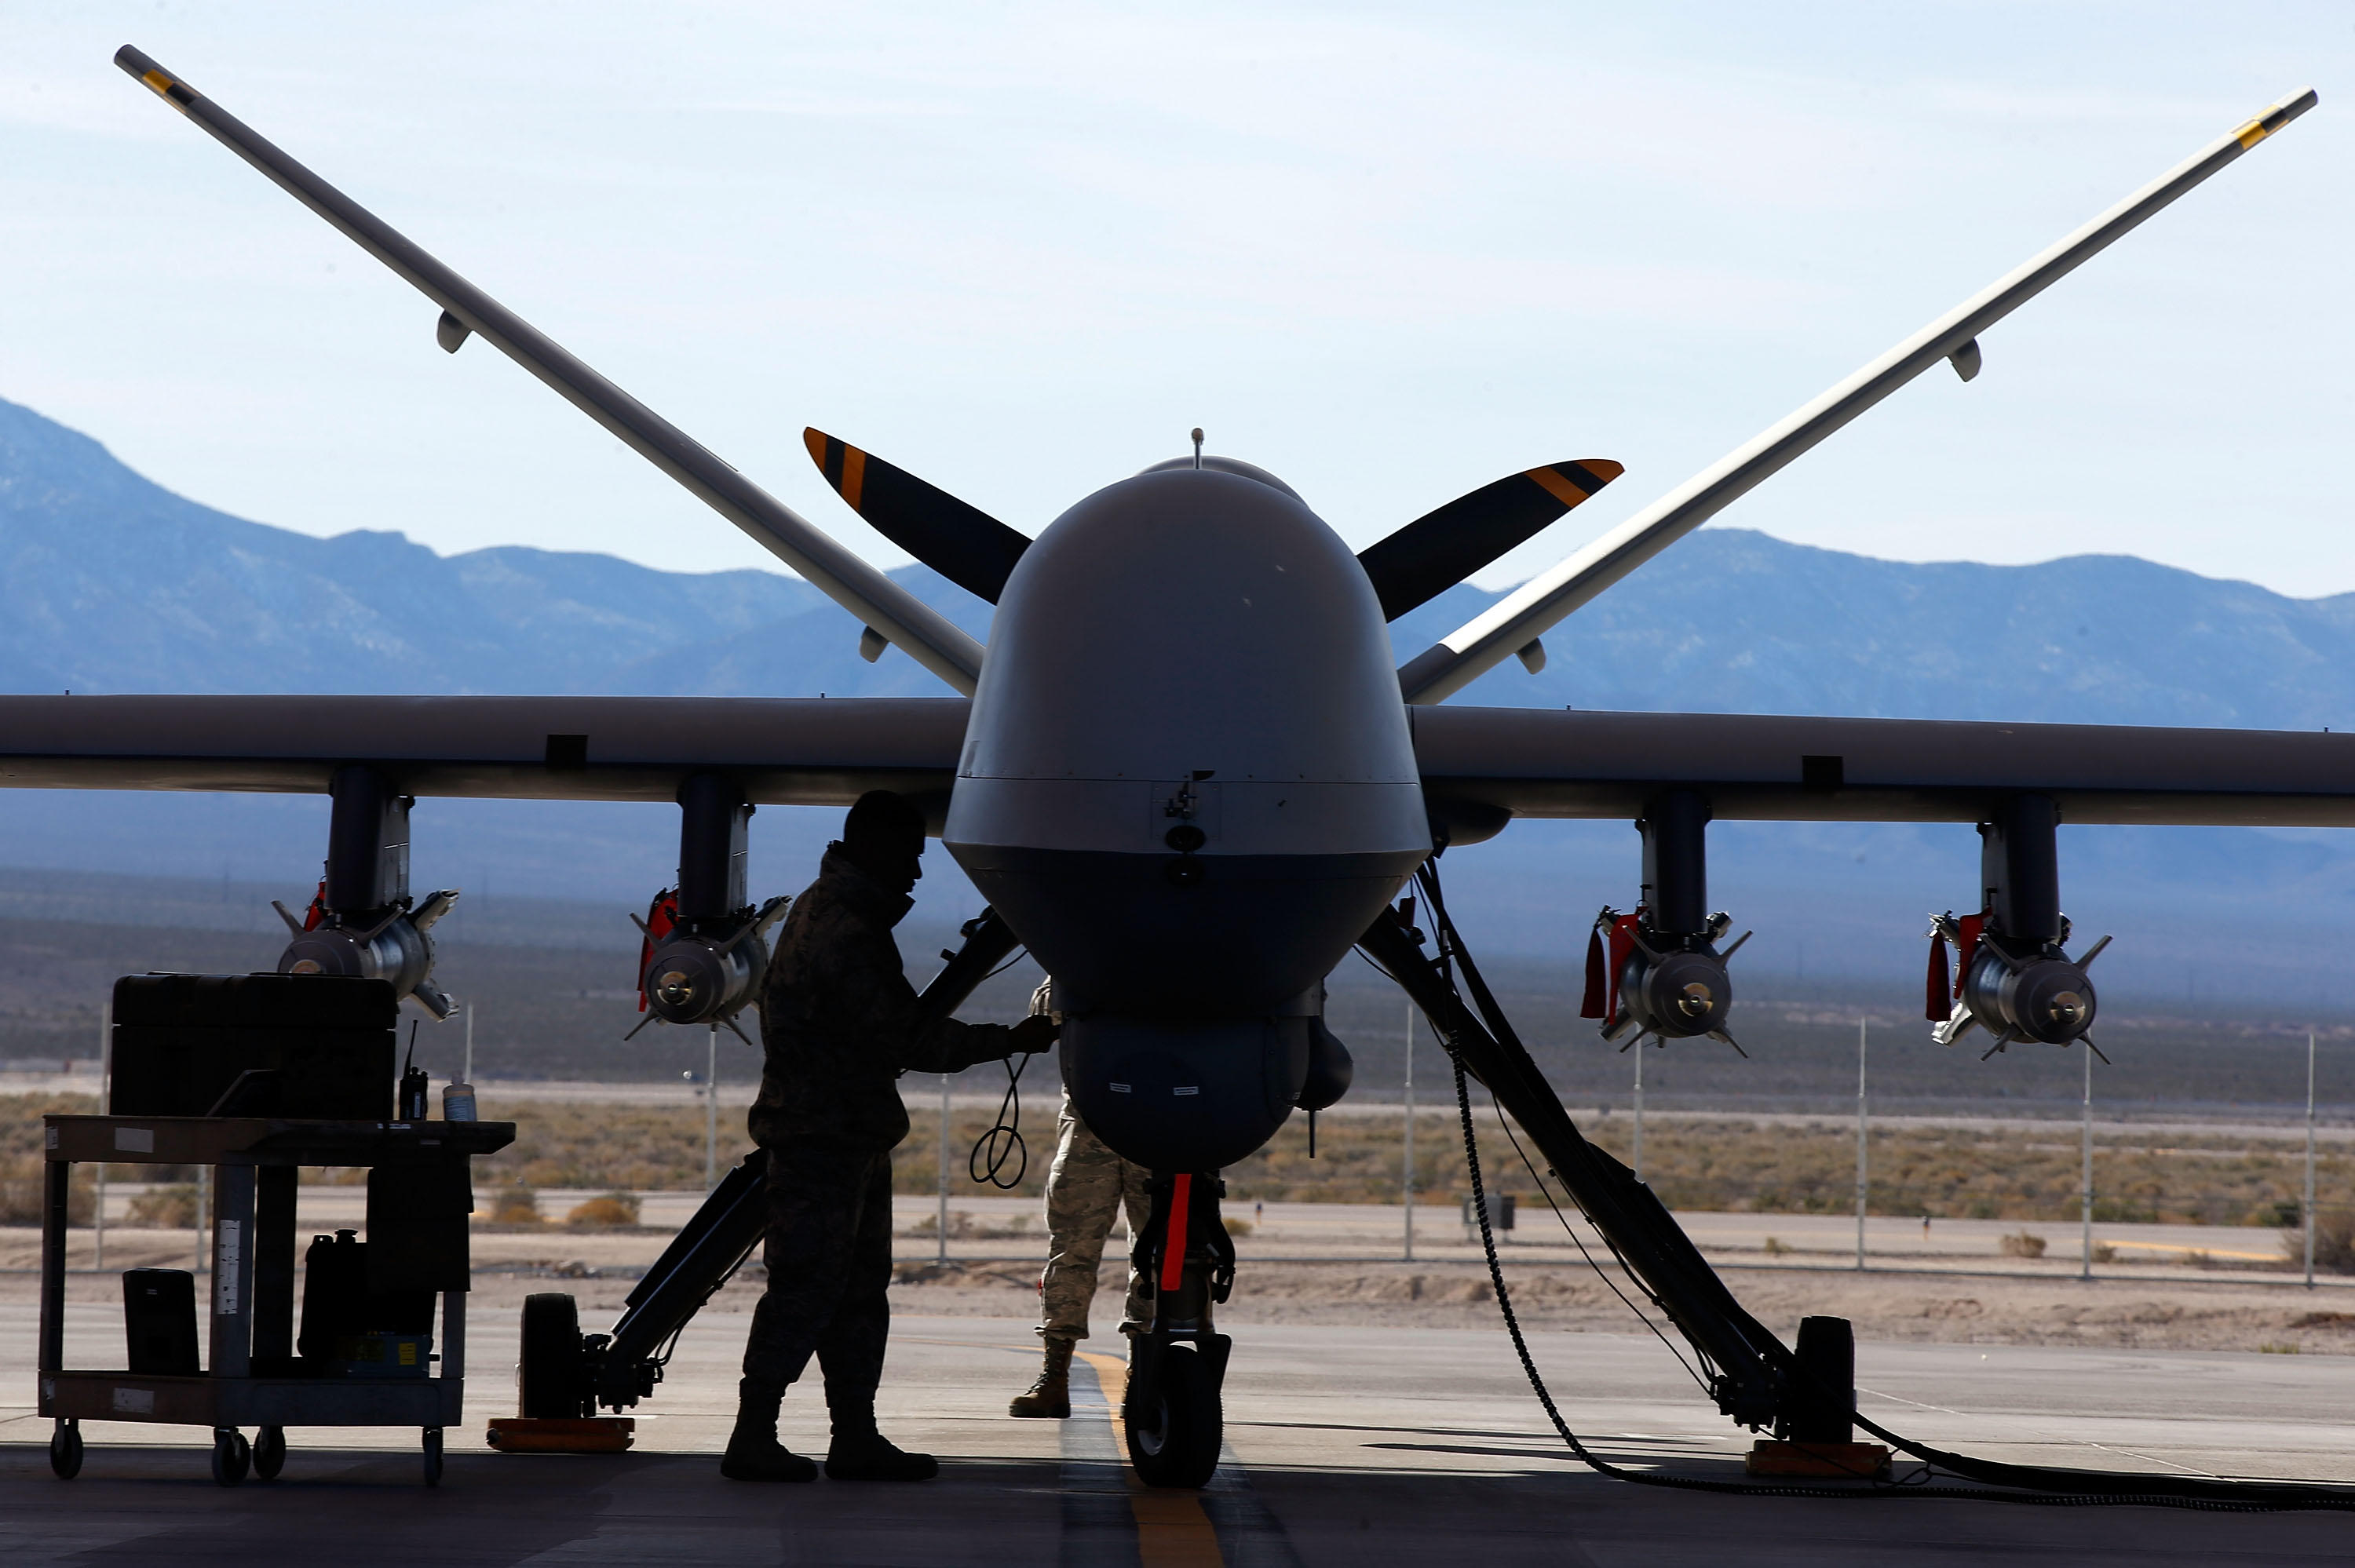 An MQ-9 Reaper remotely piloted aircraft (RPA) gets  prepared for a training mission at Creech Air Force Base, Nevada.